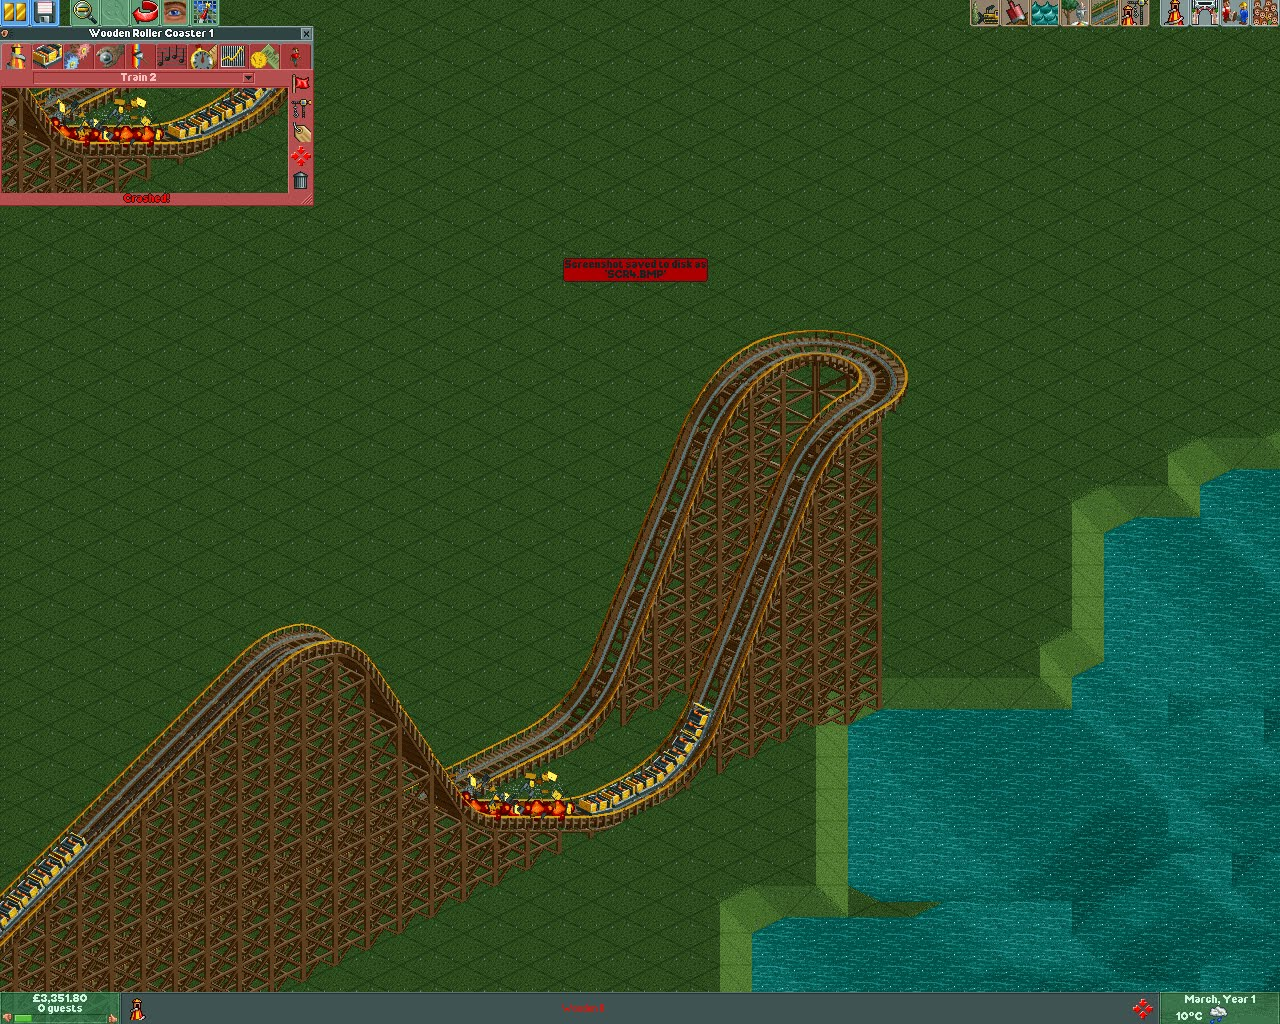 Roller Coaster Tycoon II: RCT explosions